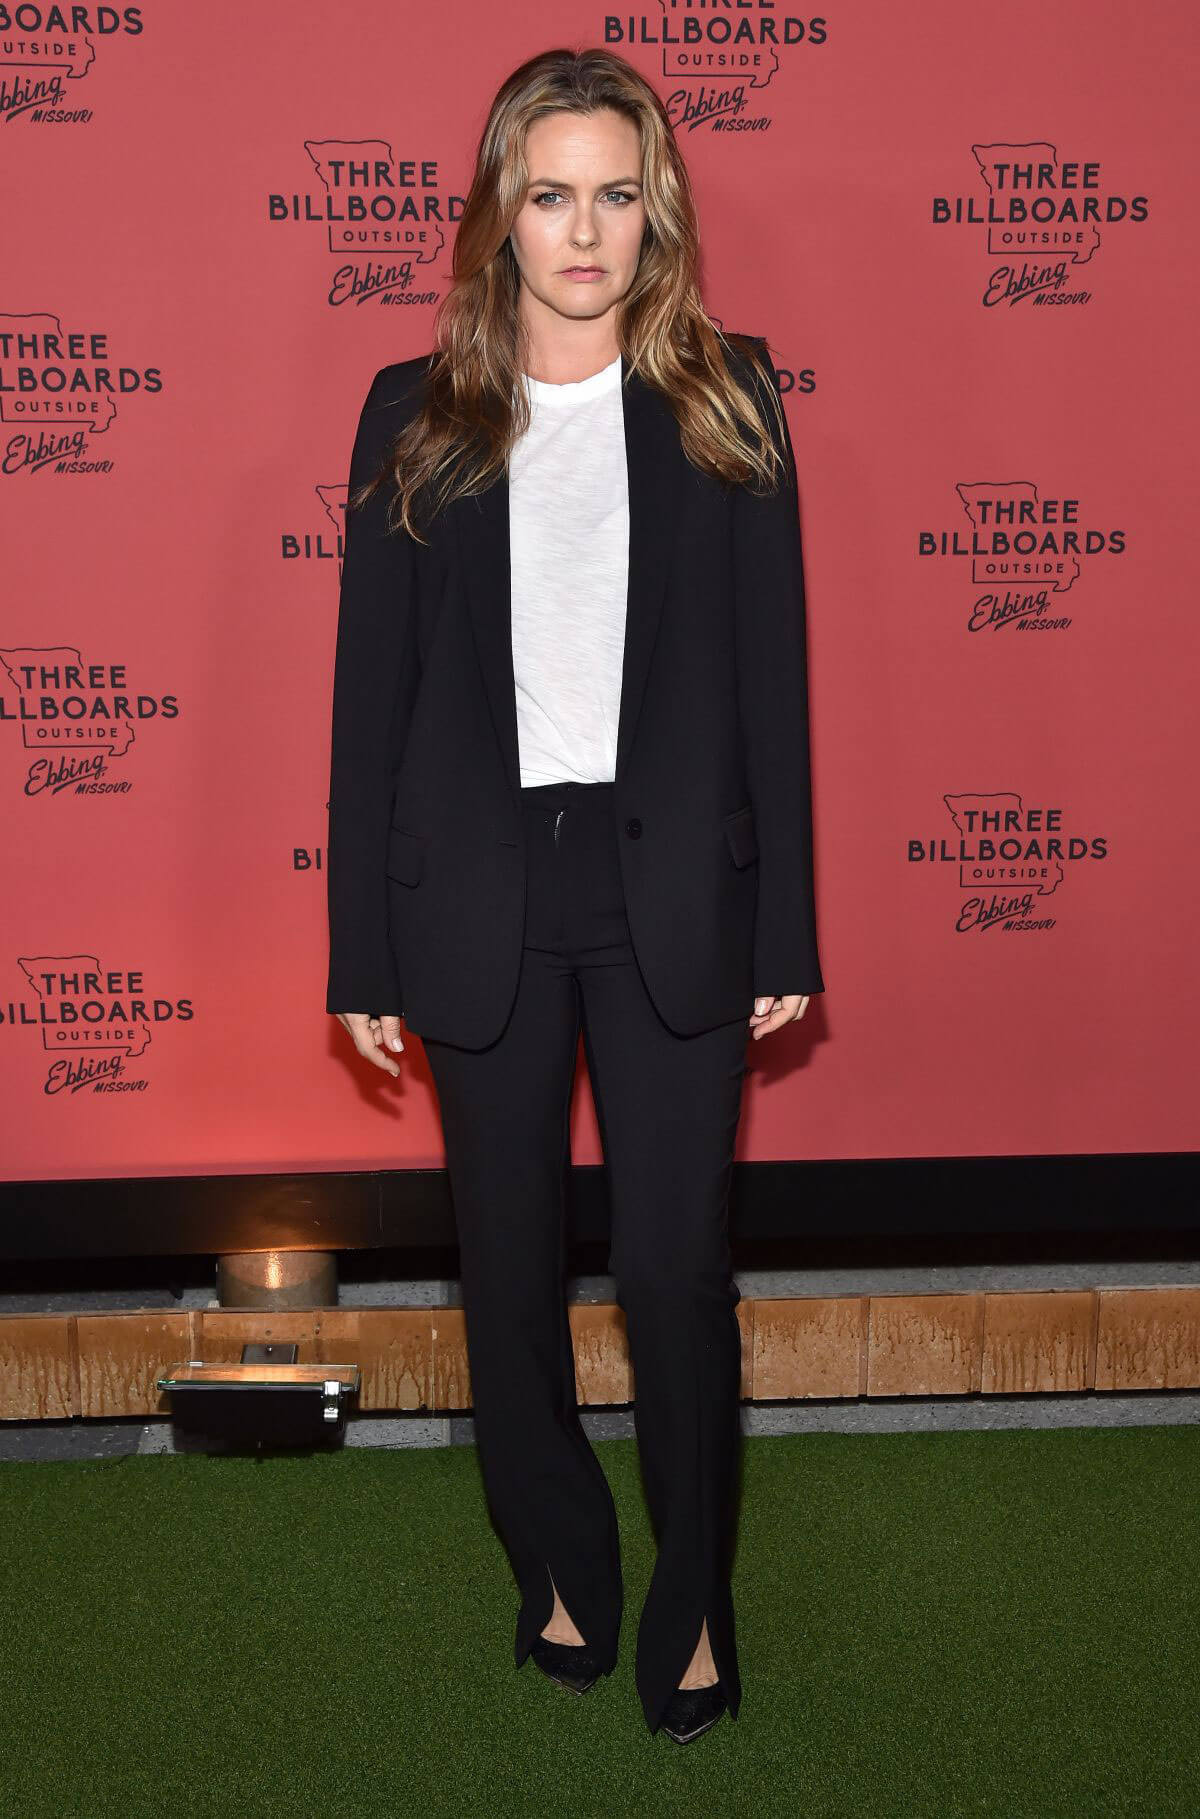 Alicia Silverstone Stills at Three Billboards Outside Ebbing, Missouri Premiere in Los Angeles